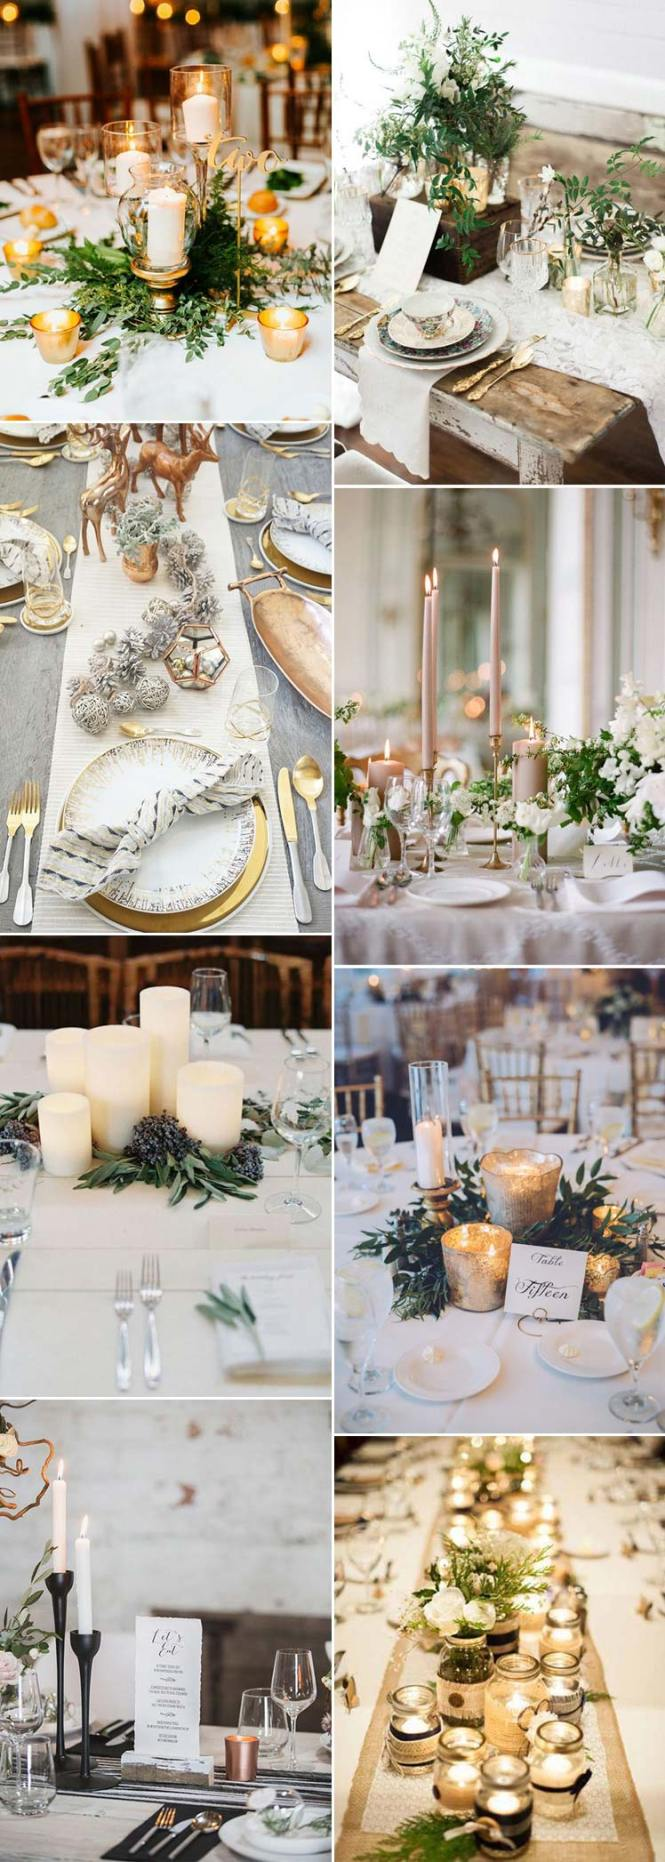 Table Decorations For Christmas Wedding Best Dinner Ideas On